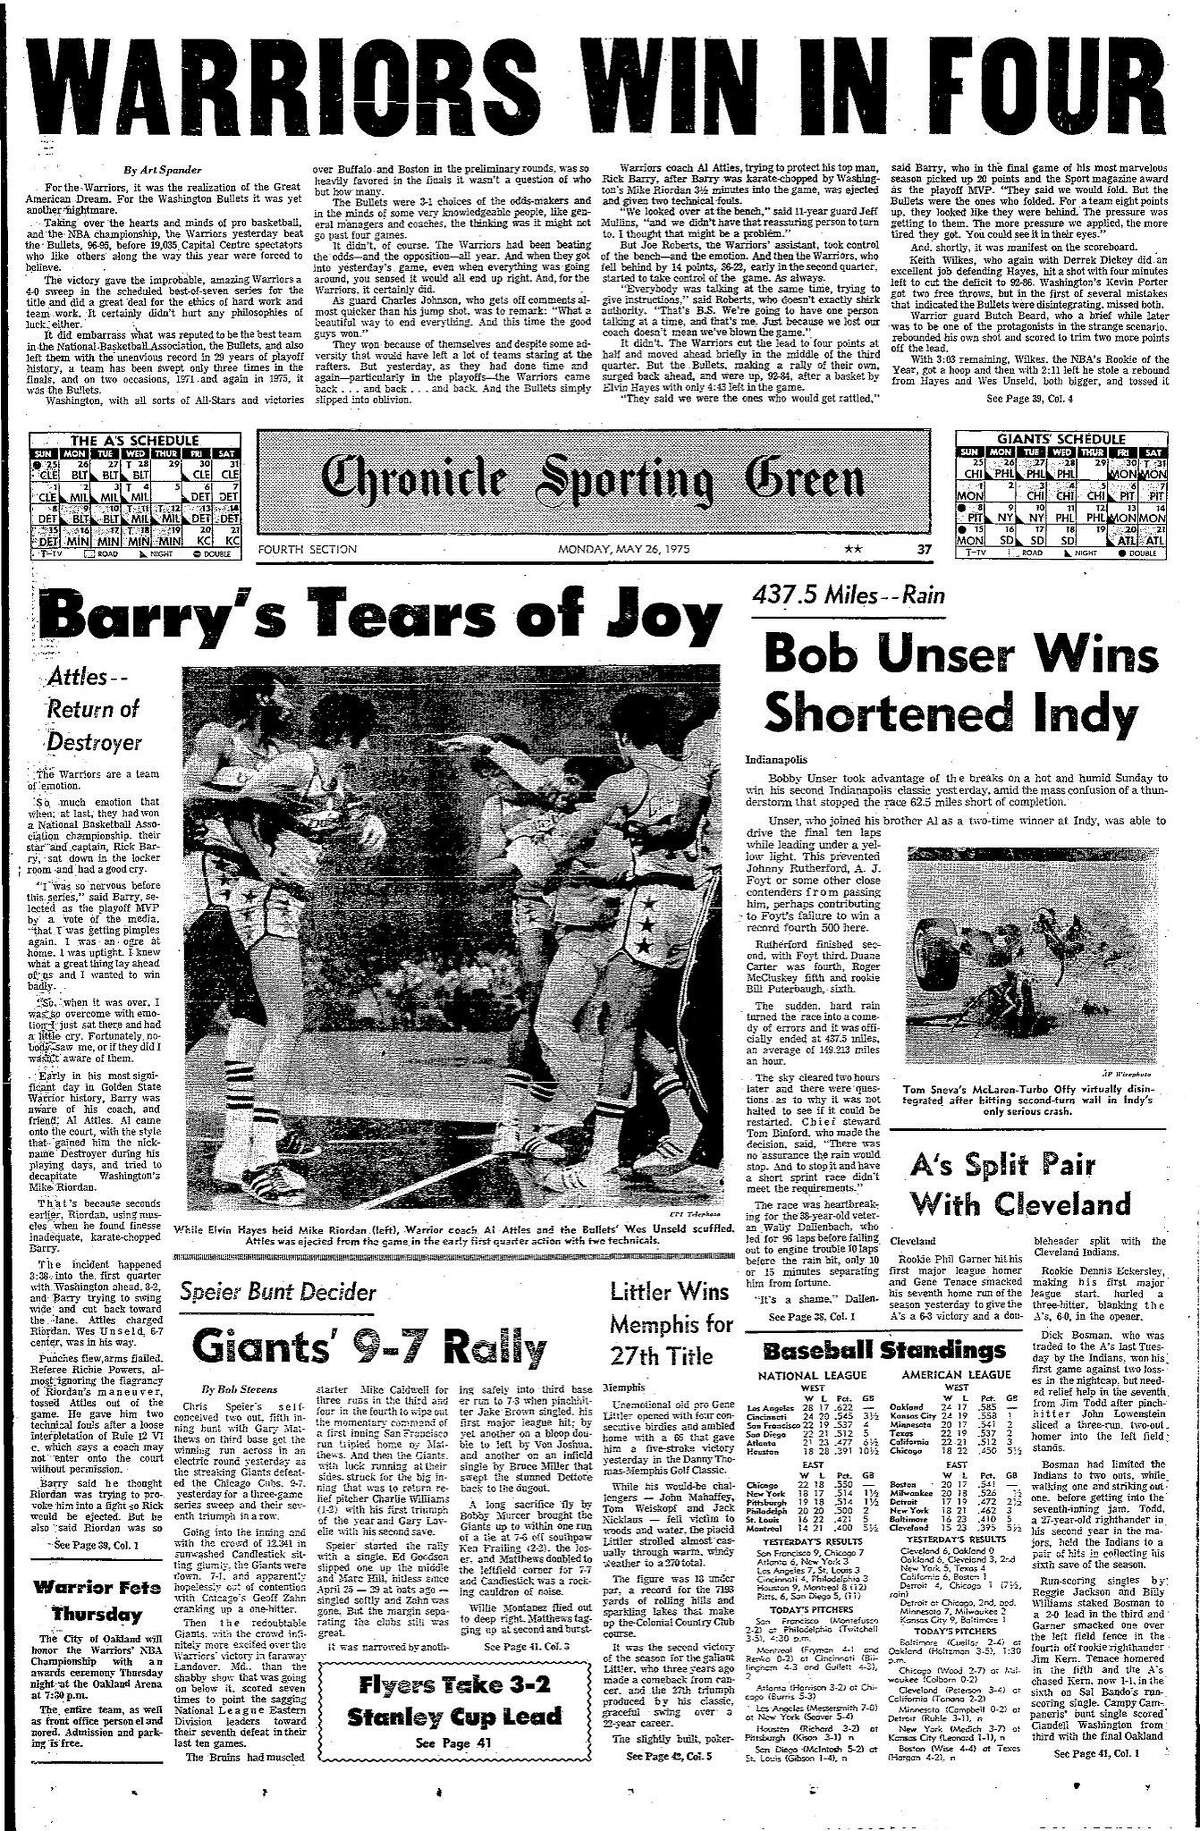 Historic Chronicle Front Page May 26, 1975 Sports section front page Golden State Warriors win the NBA championship Chron365, Chroncover